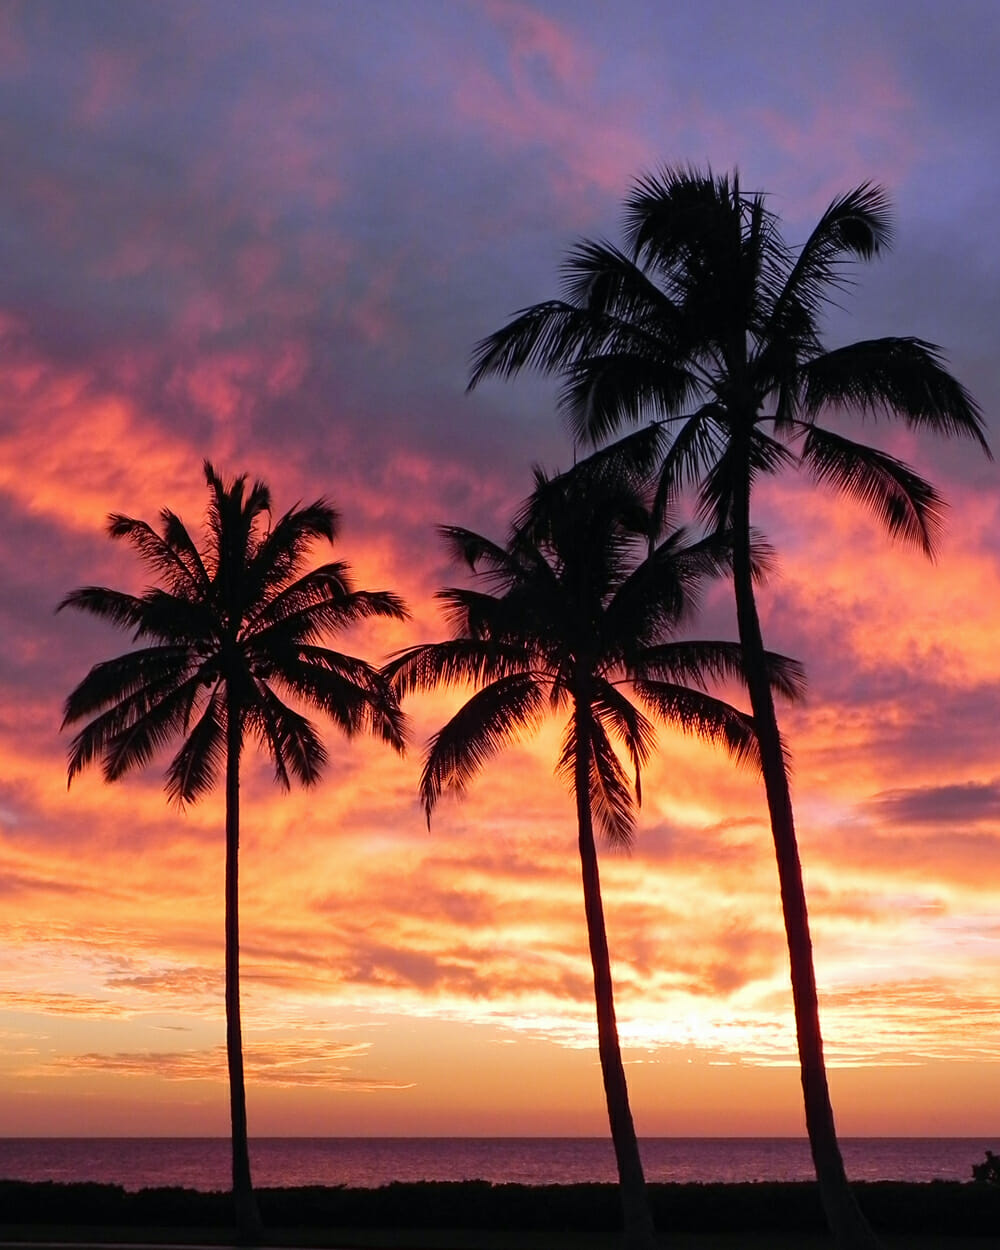 Hawaii sunset with coconut palms